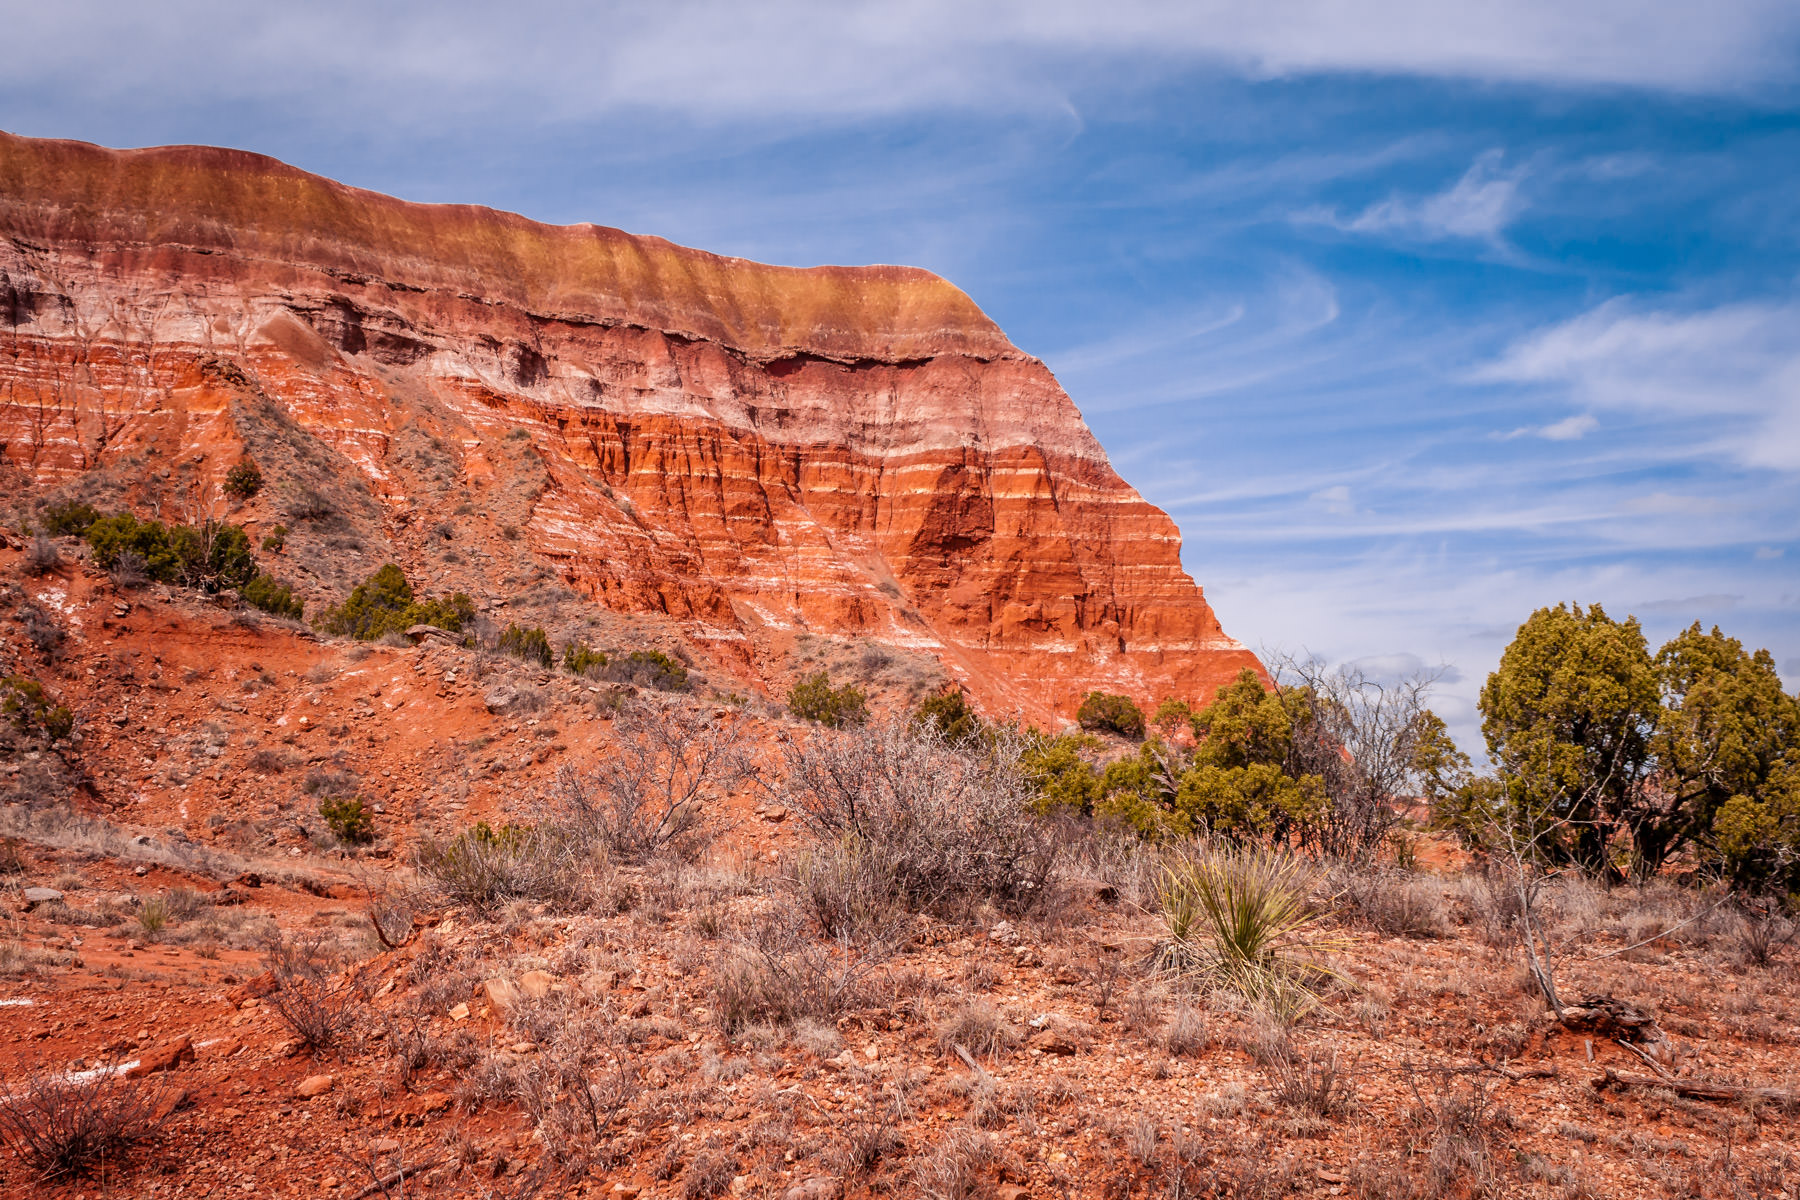 A rocky ridge—formed by millions of years of erosion along the Red River—makes up a canyon wall at Texas' Palo Duro Canyon.